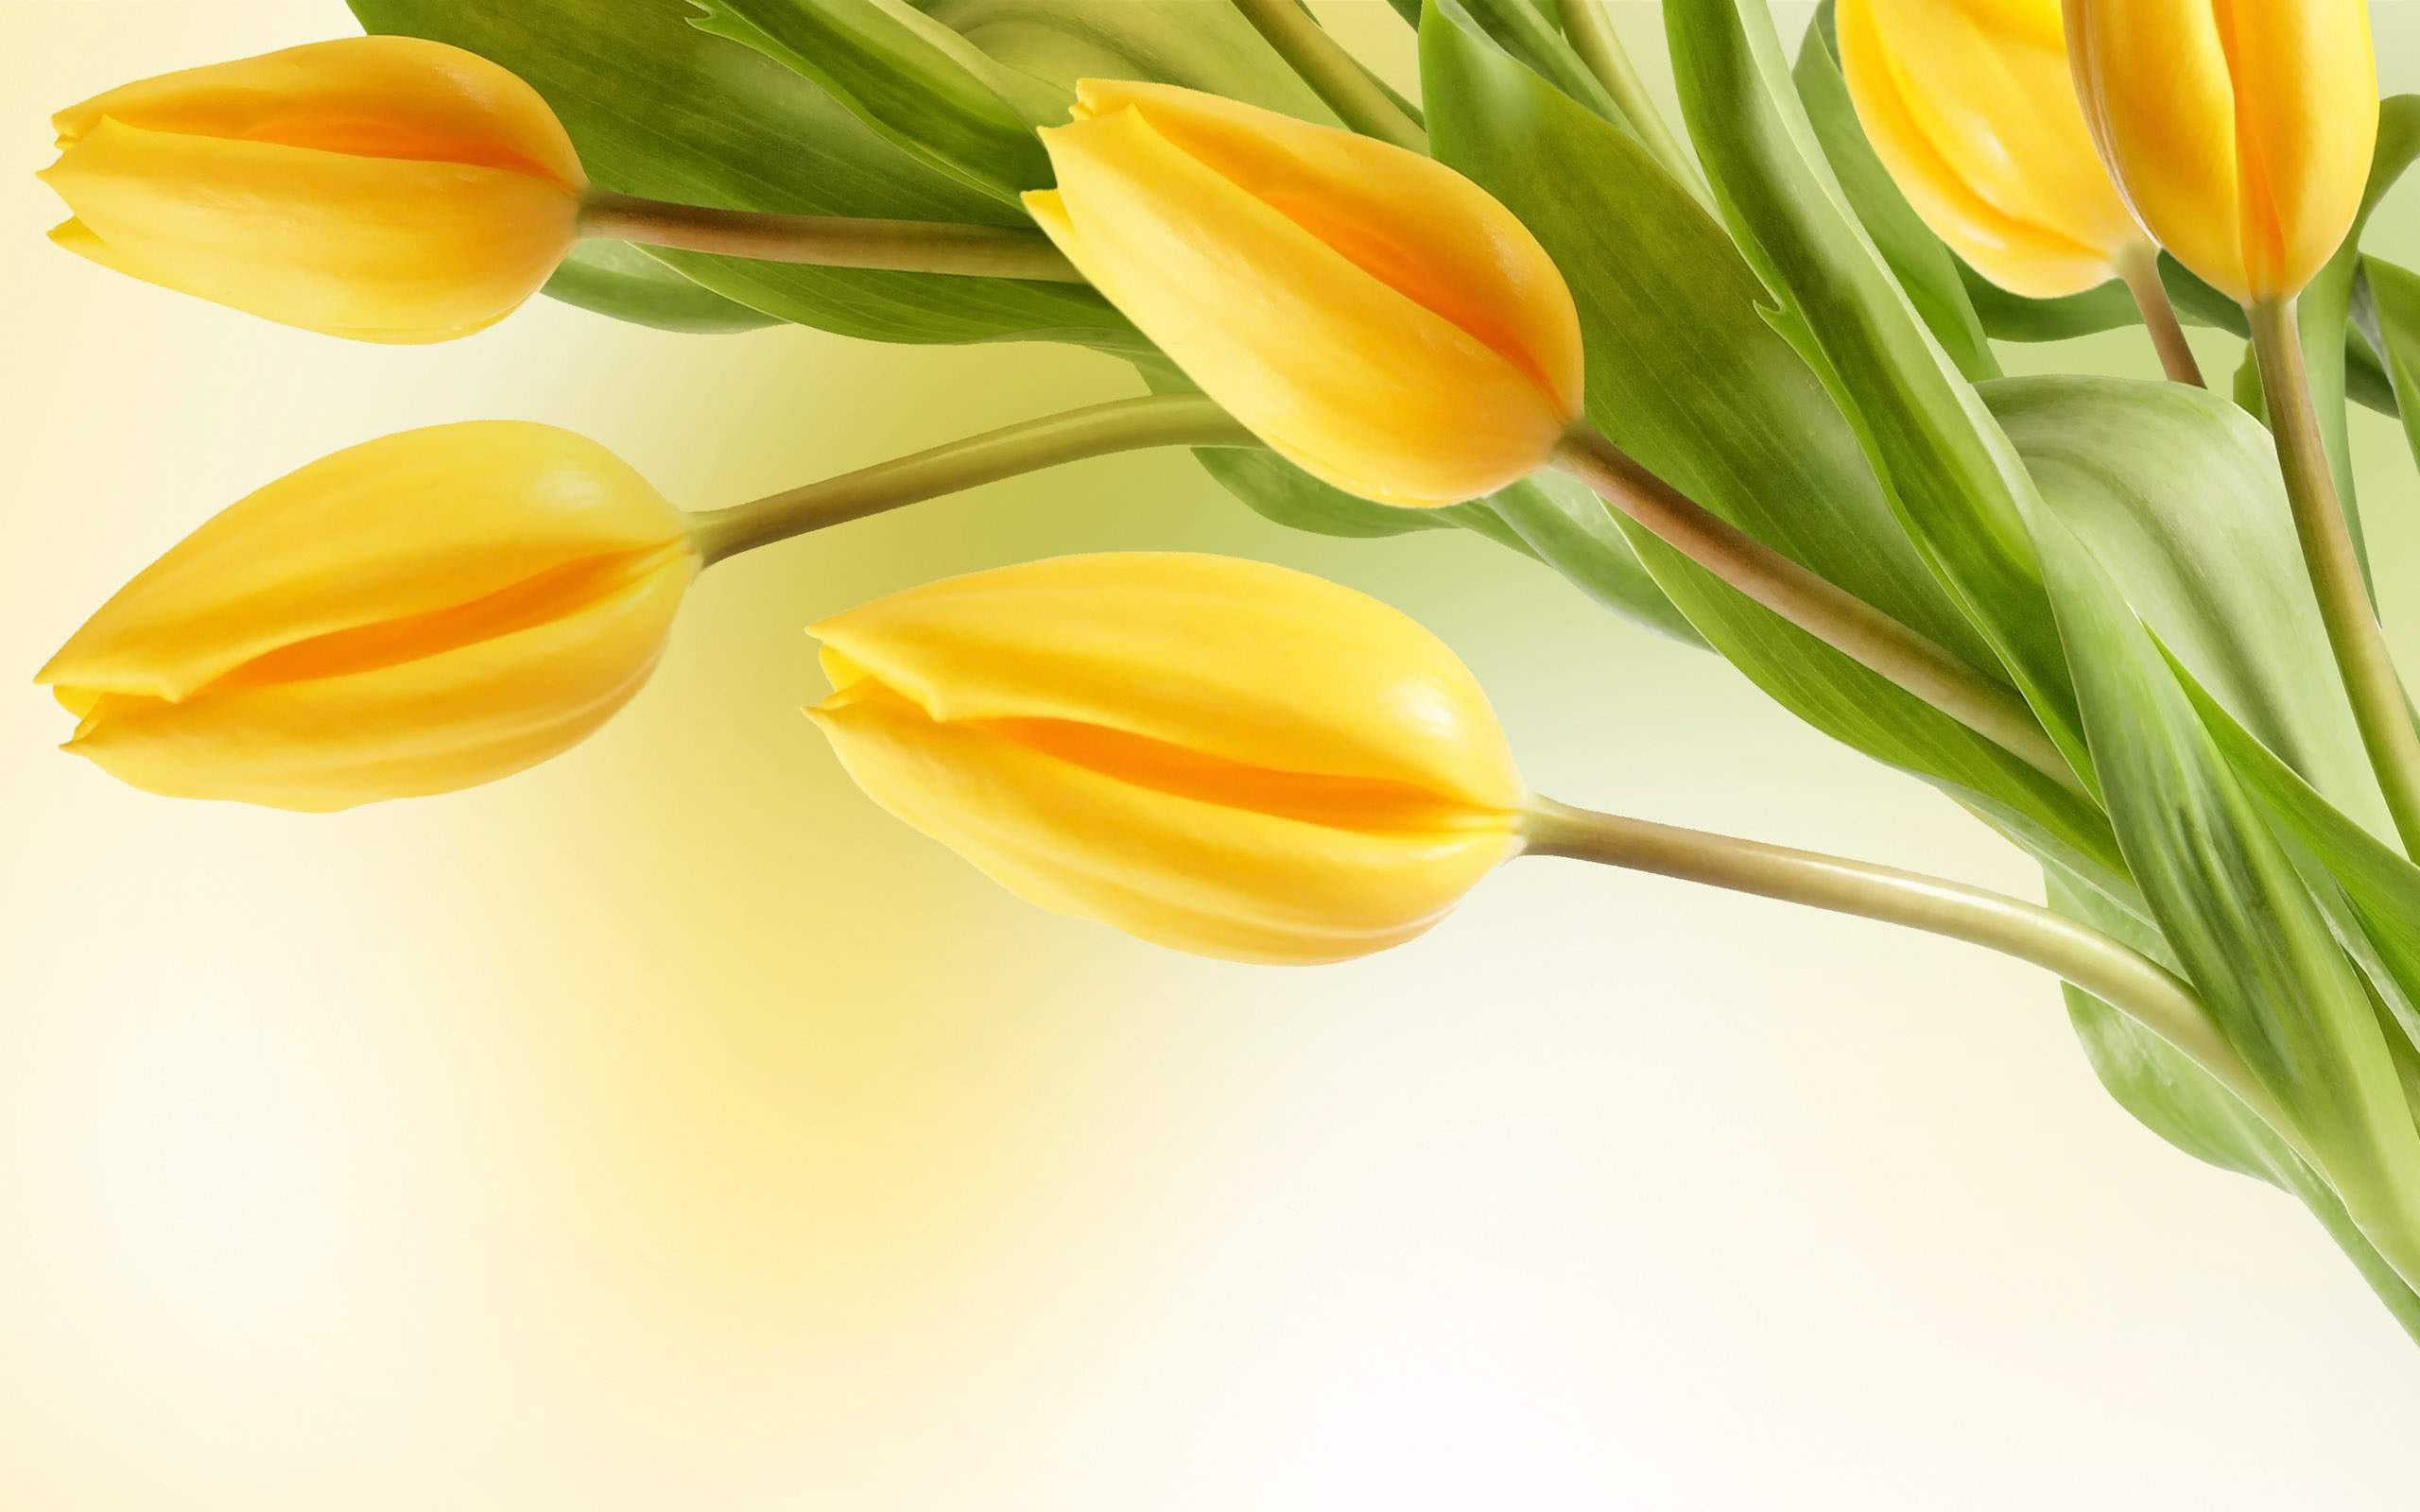 Yellow flowers wallpaper 11 background hdflowerwallpaper yellow flowers wallpaper hd wallpaper mightylinksfo